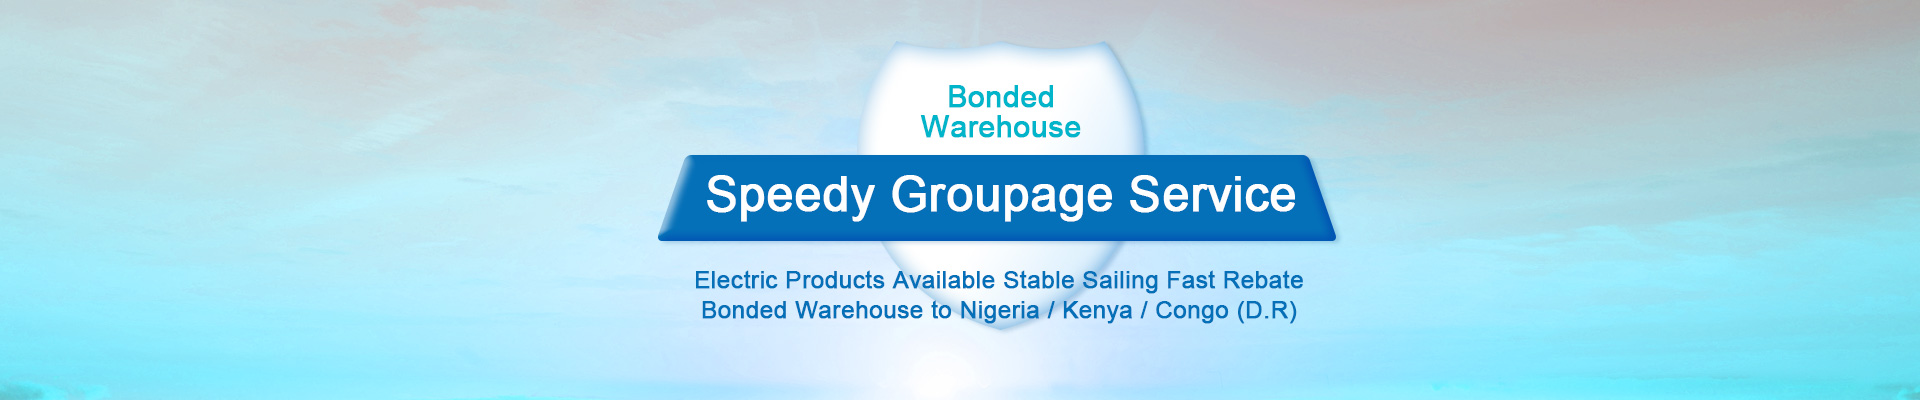 Bonded Warehouse LCL